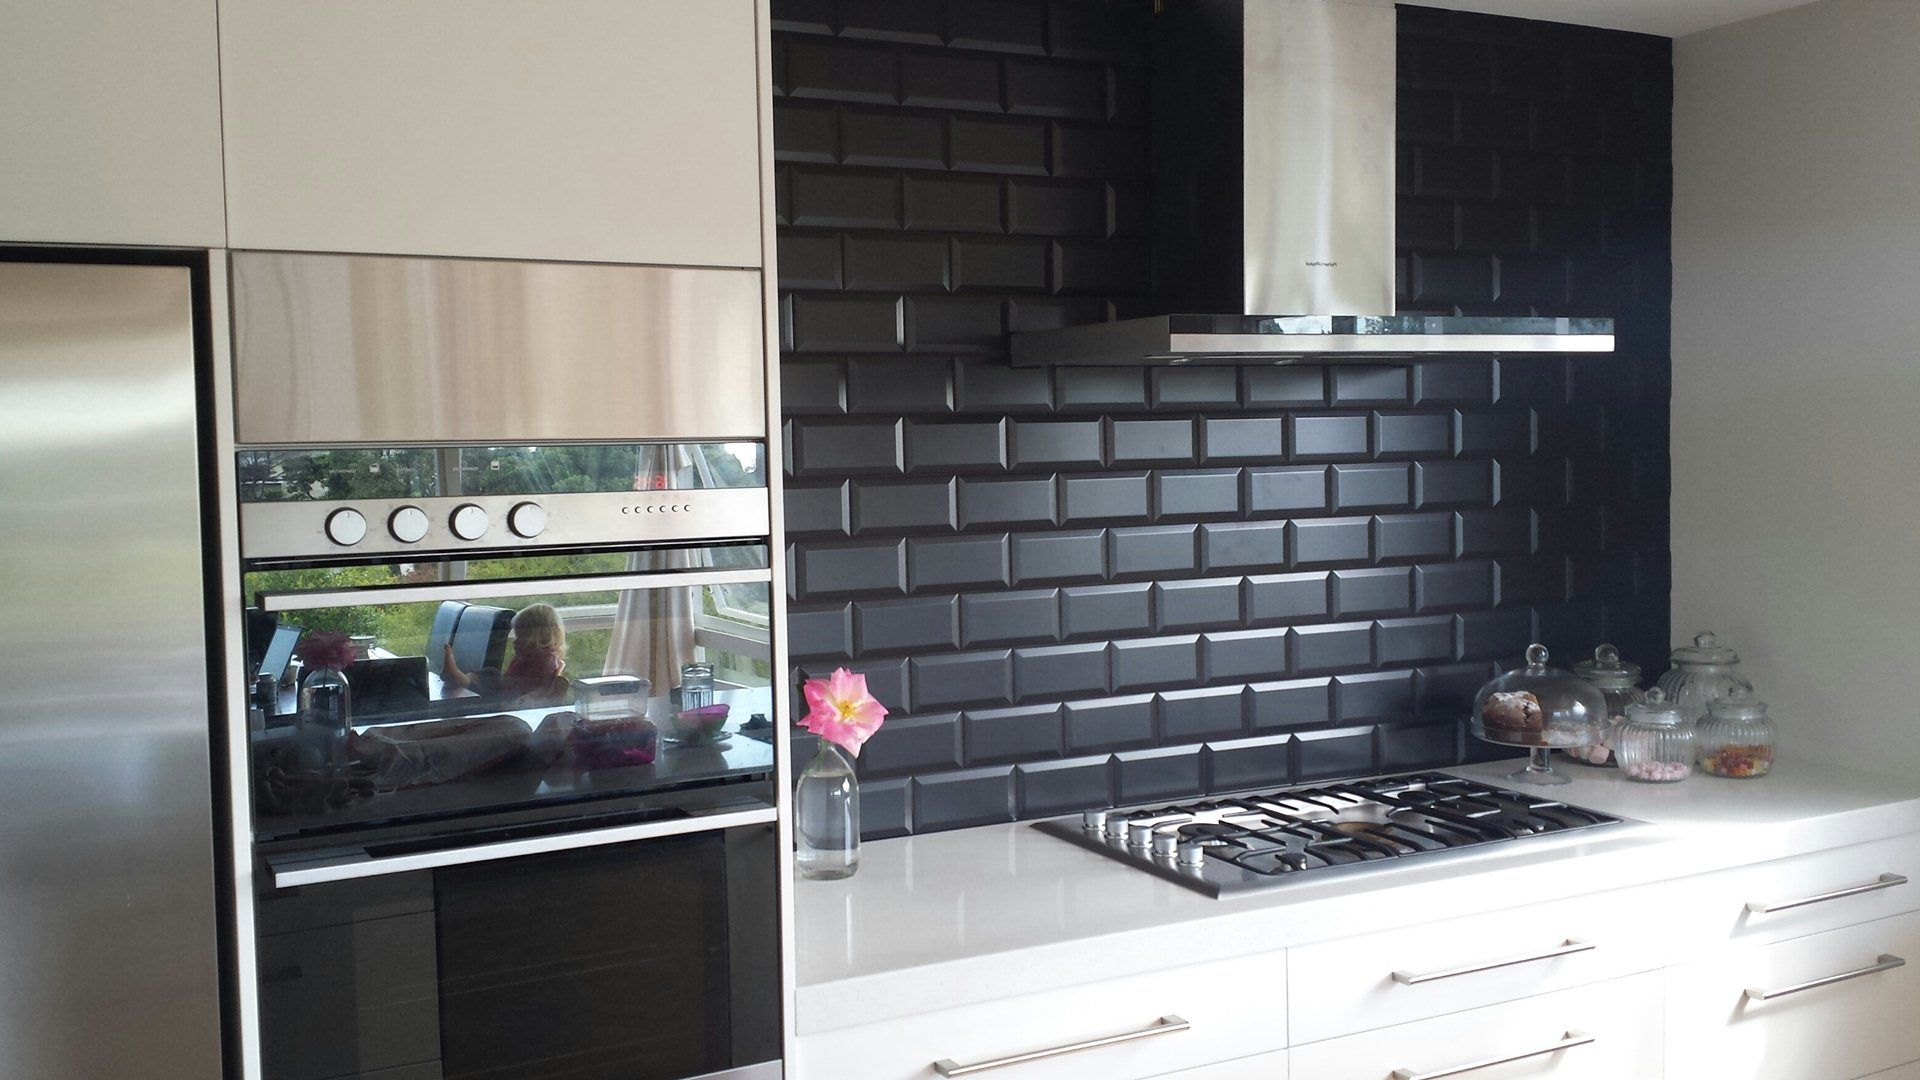 black tiles kitchen wall image of black subway tile kitchen backsplash home 4756